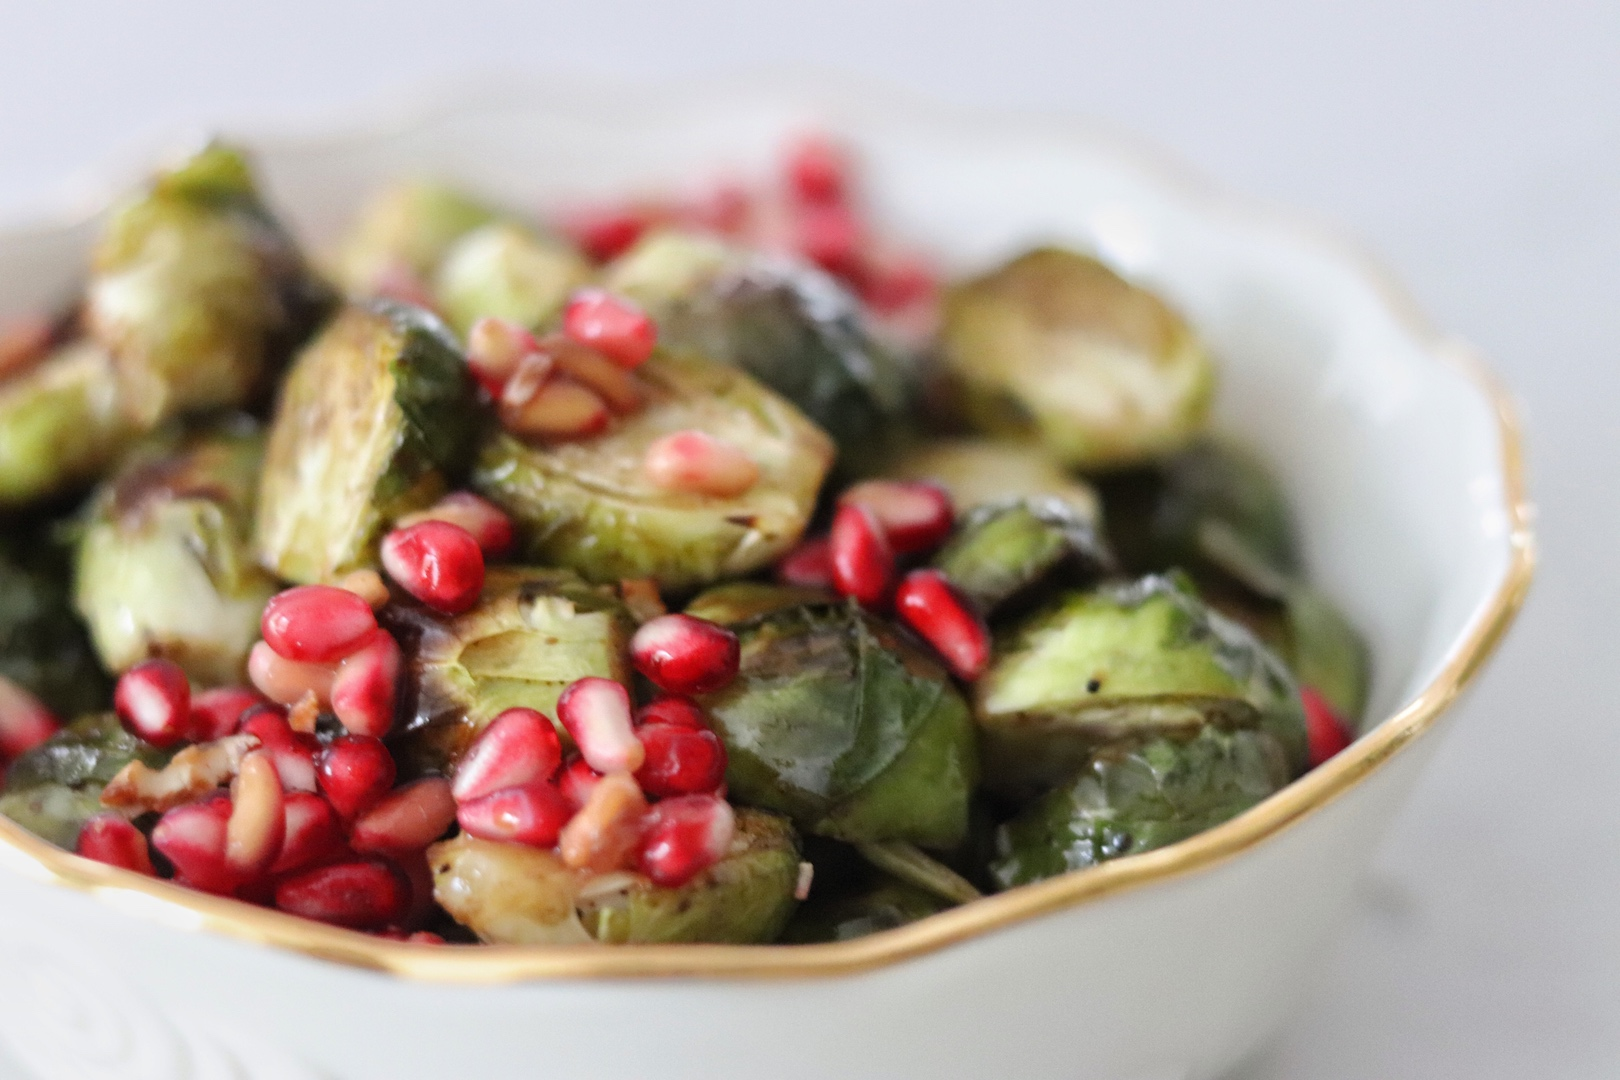 Roasted Brussels Sprouts with Balsamic and Pomegranate Seeds in a white bowl with a gold rim